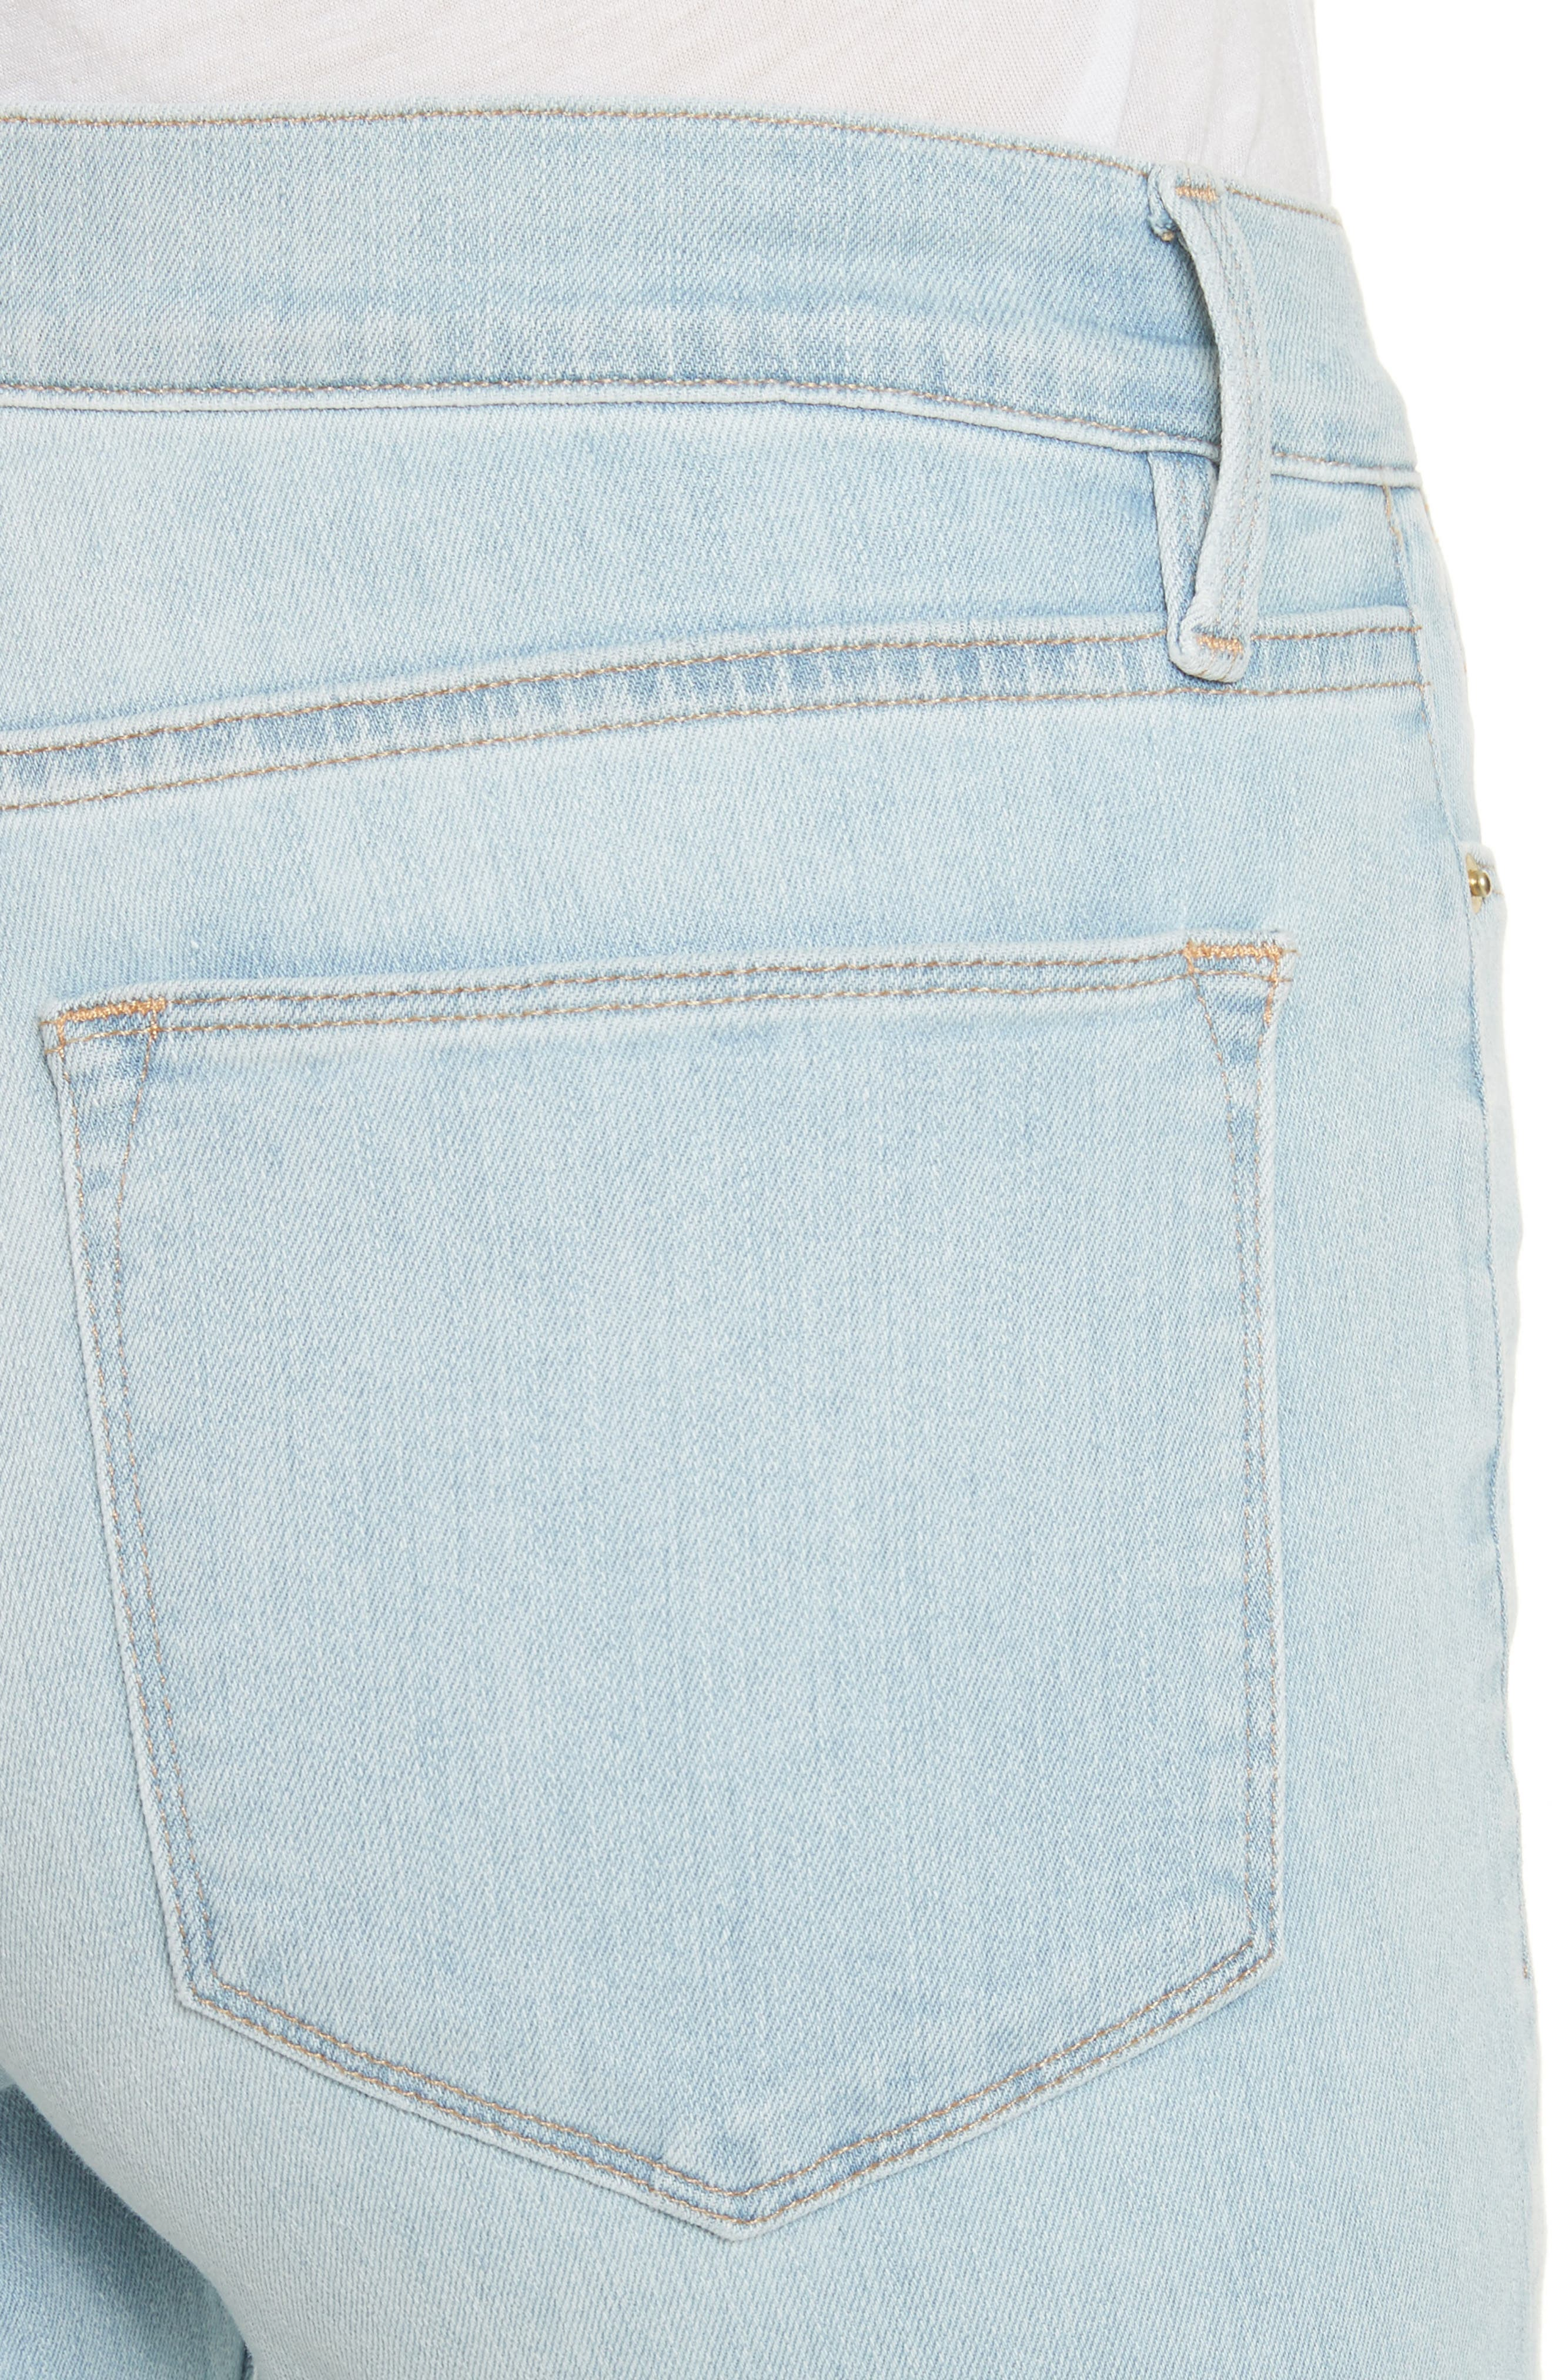 Le High Crop Straight Leg Jeans,                             Alternate thumbnail 6, color,                             Finchley